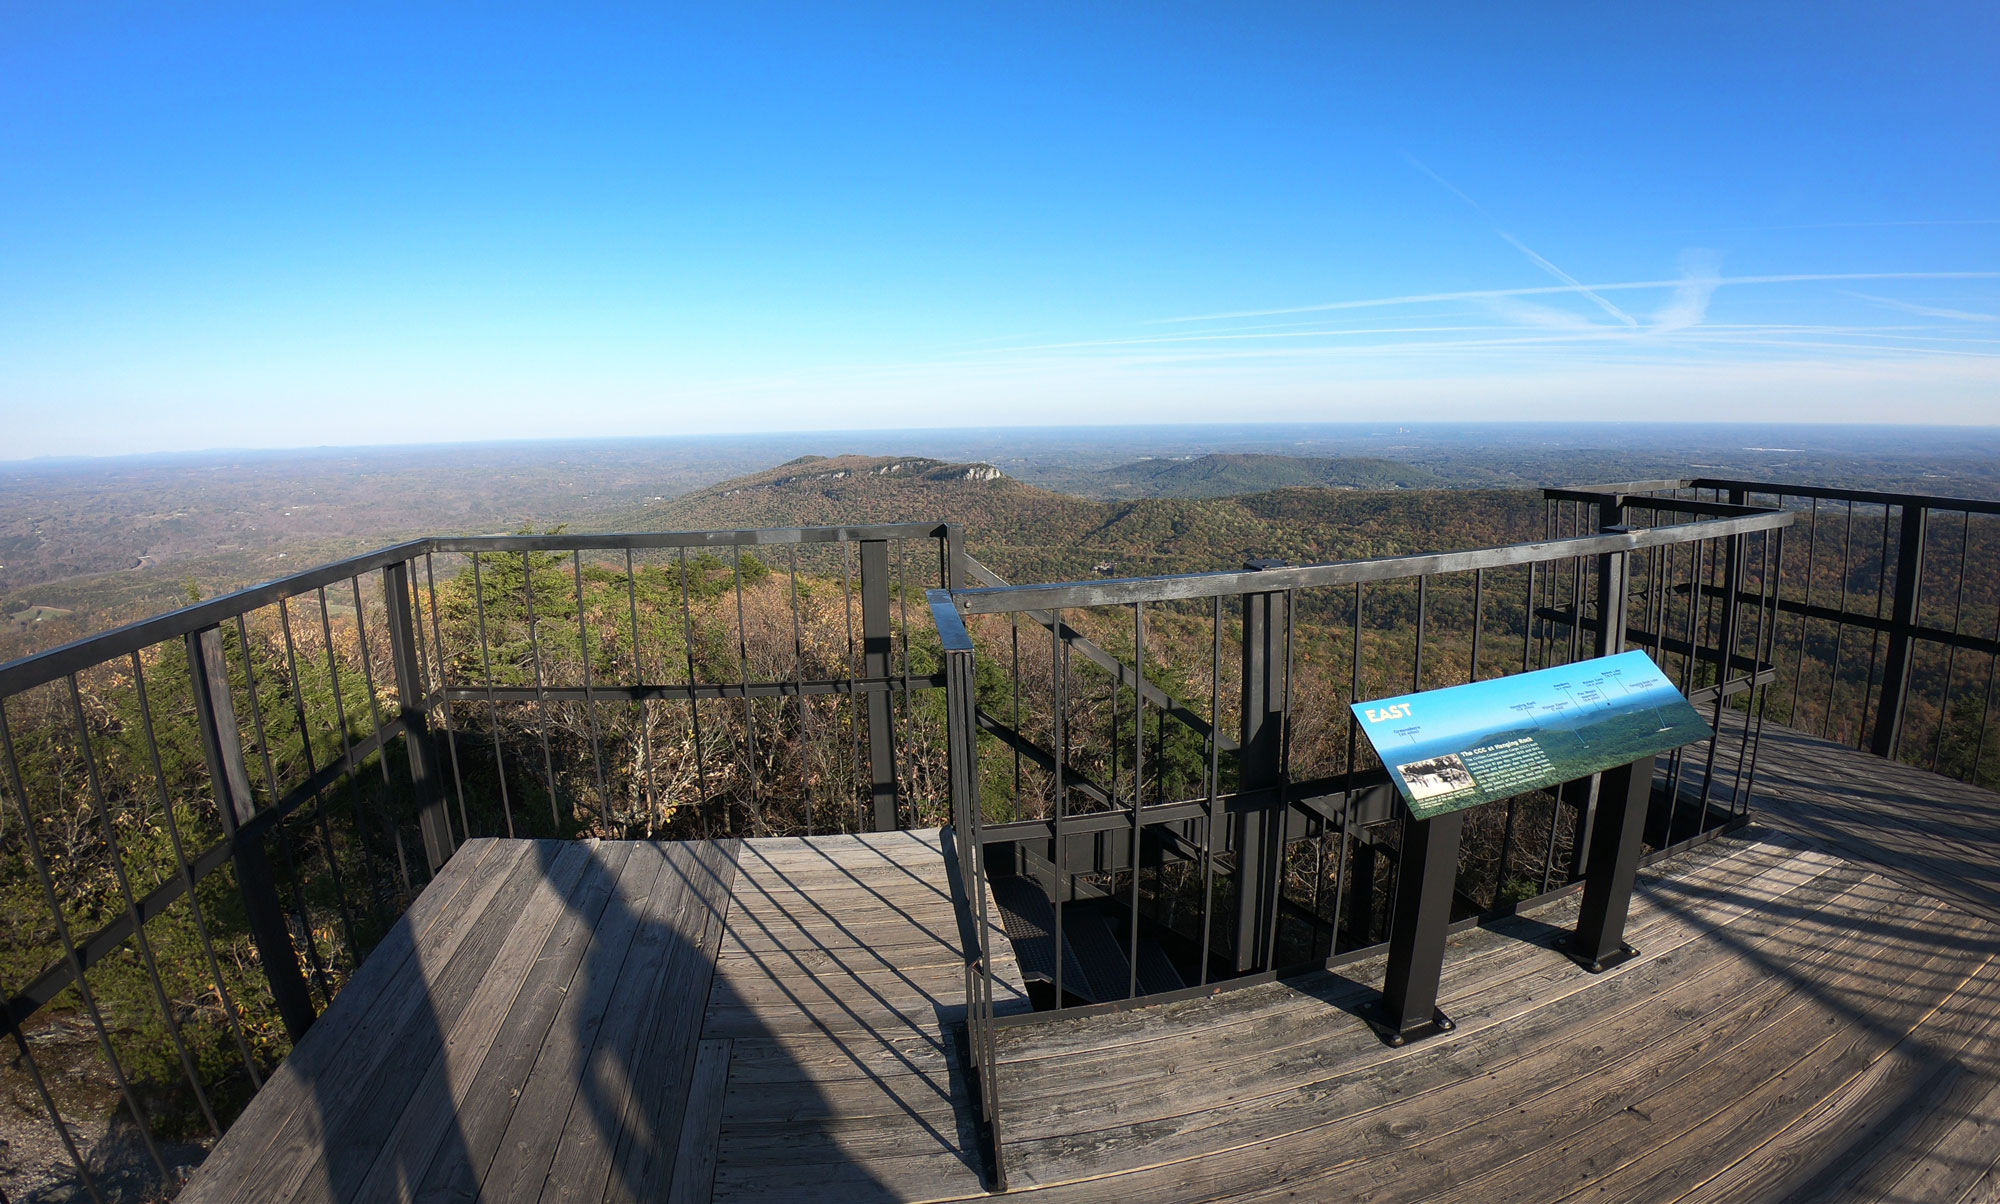 Hiking on the Fire Tower Trail from the Hanging Rock State Park campground, North Carolina